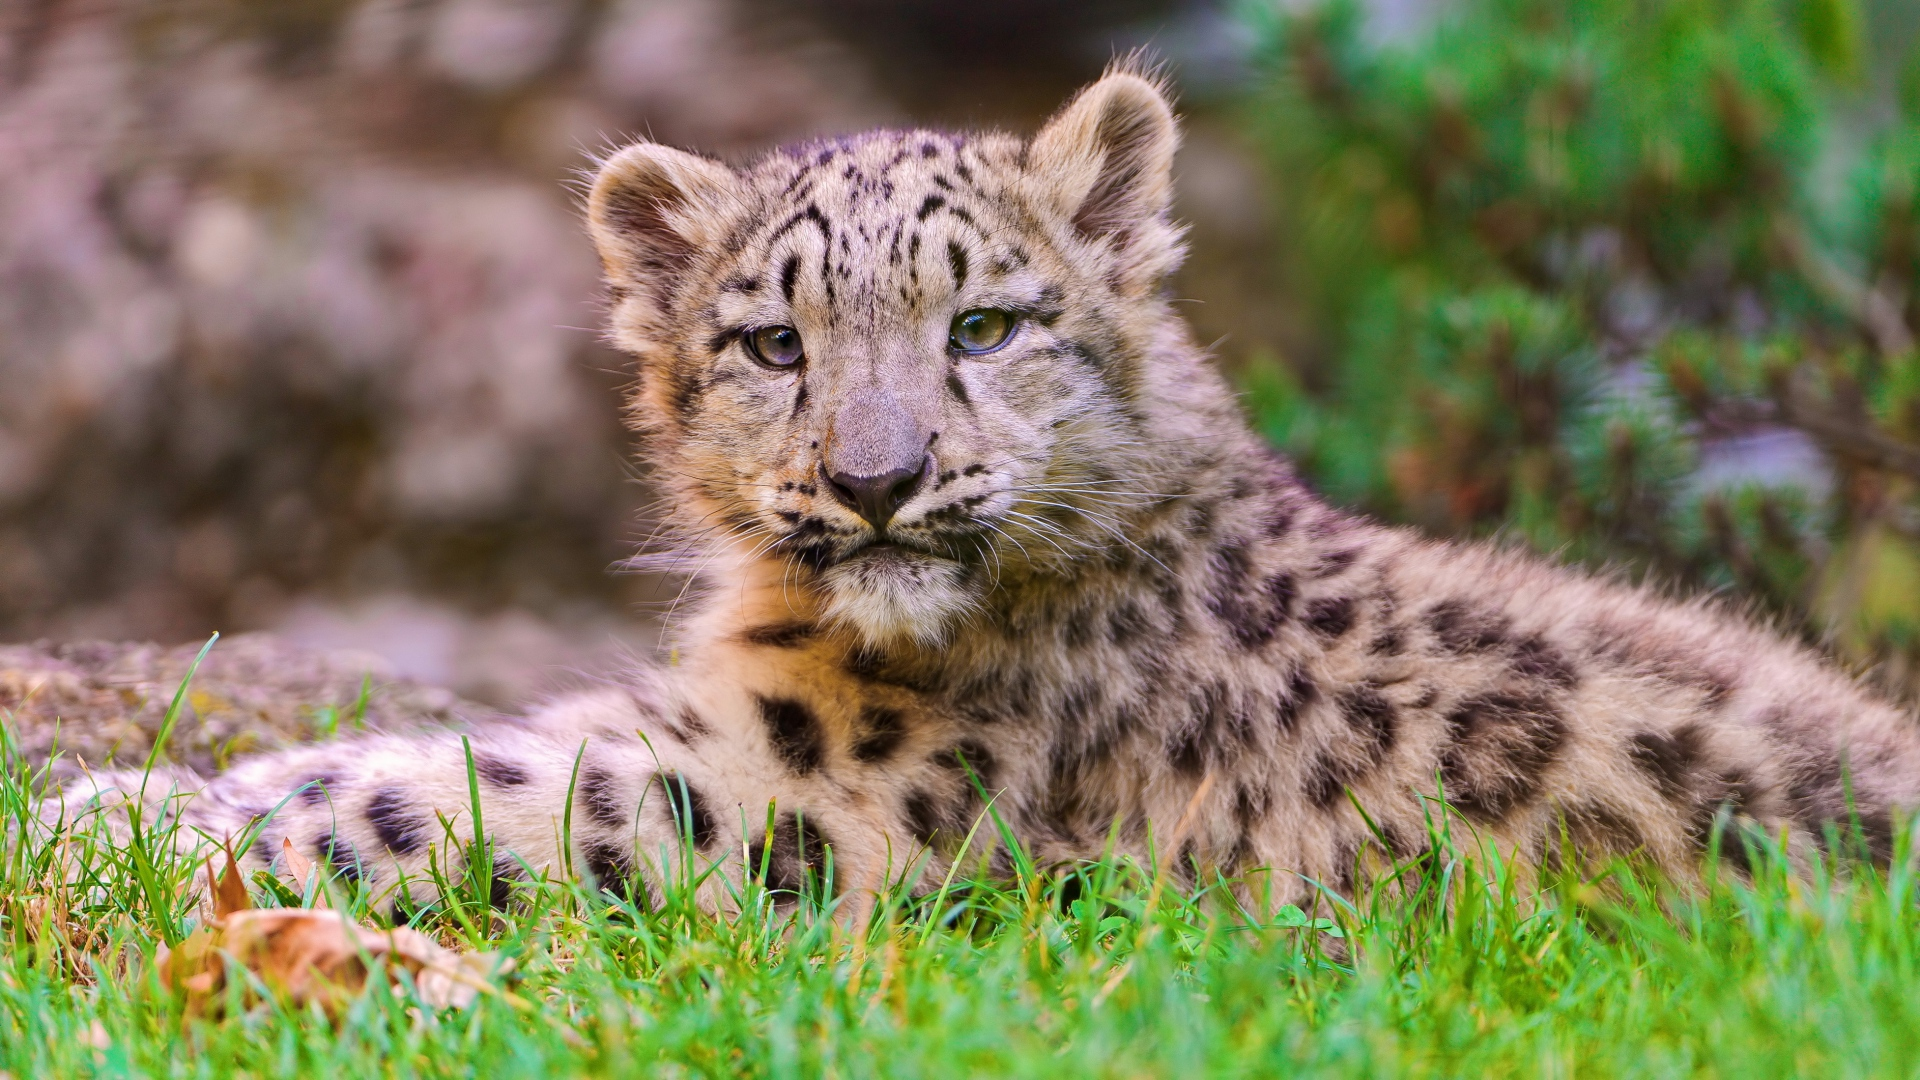 Get The Latest Snow Leopard Cub Grass News Pictures And Videos Learn All About From Wallpapers4uorg Your Wallpaper